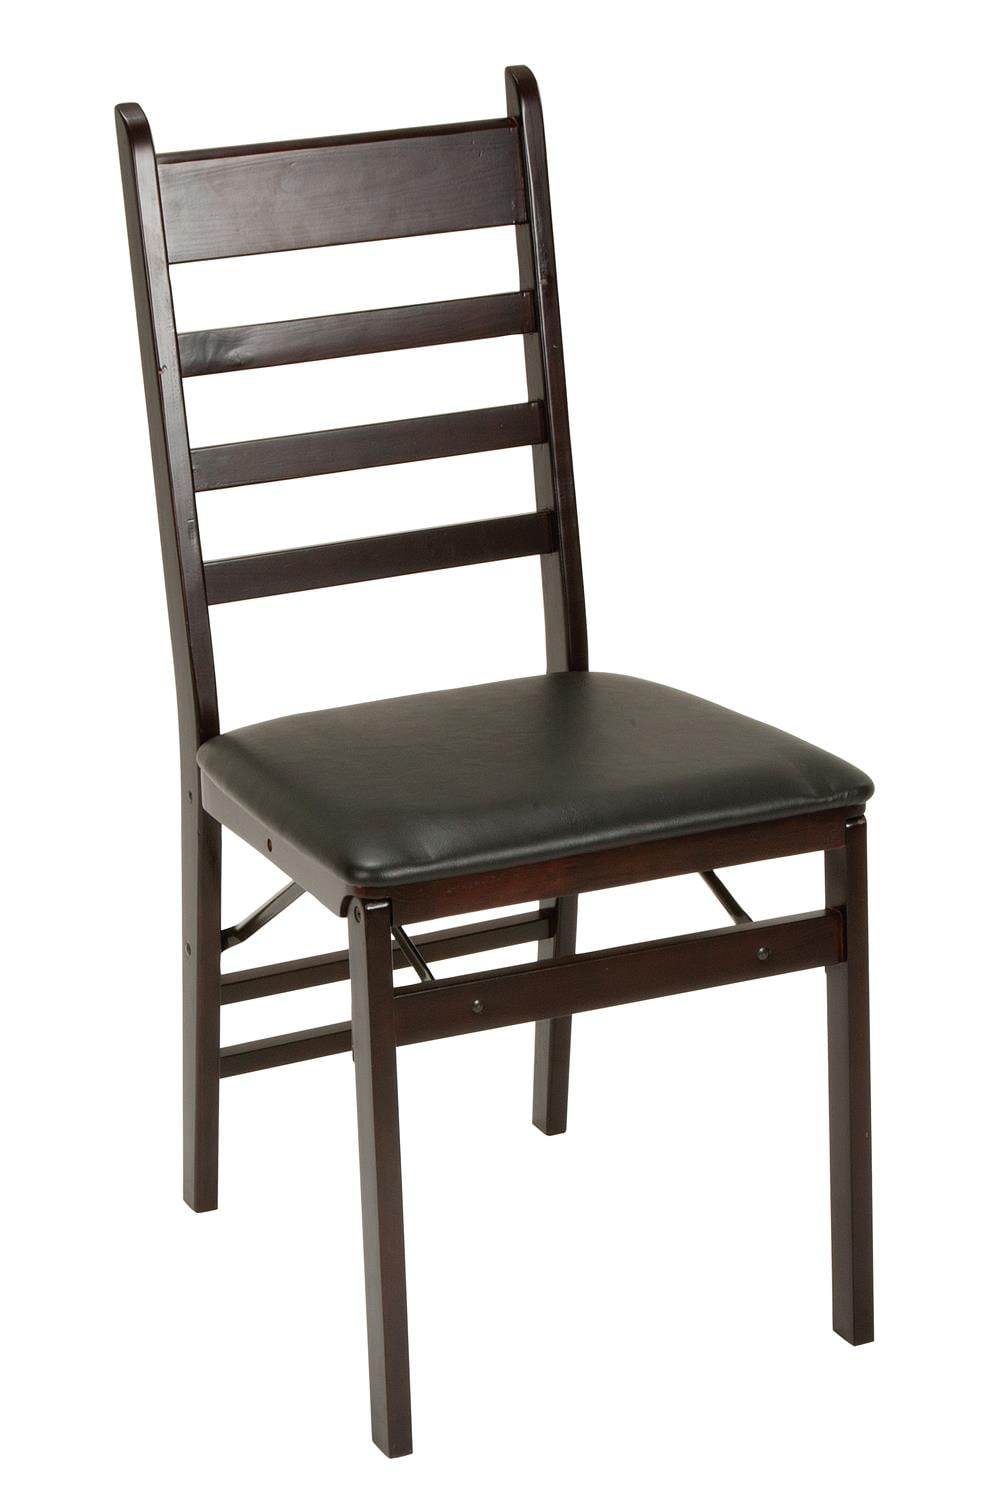 Cosco Ladder Back Wood Folding Chair Espresso/Black Set of 2 - Walmart.com  sc 1 st  Walmart : hardwood folding chairs - Cheerinfomania.Com